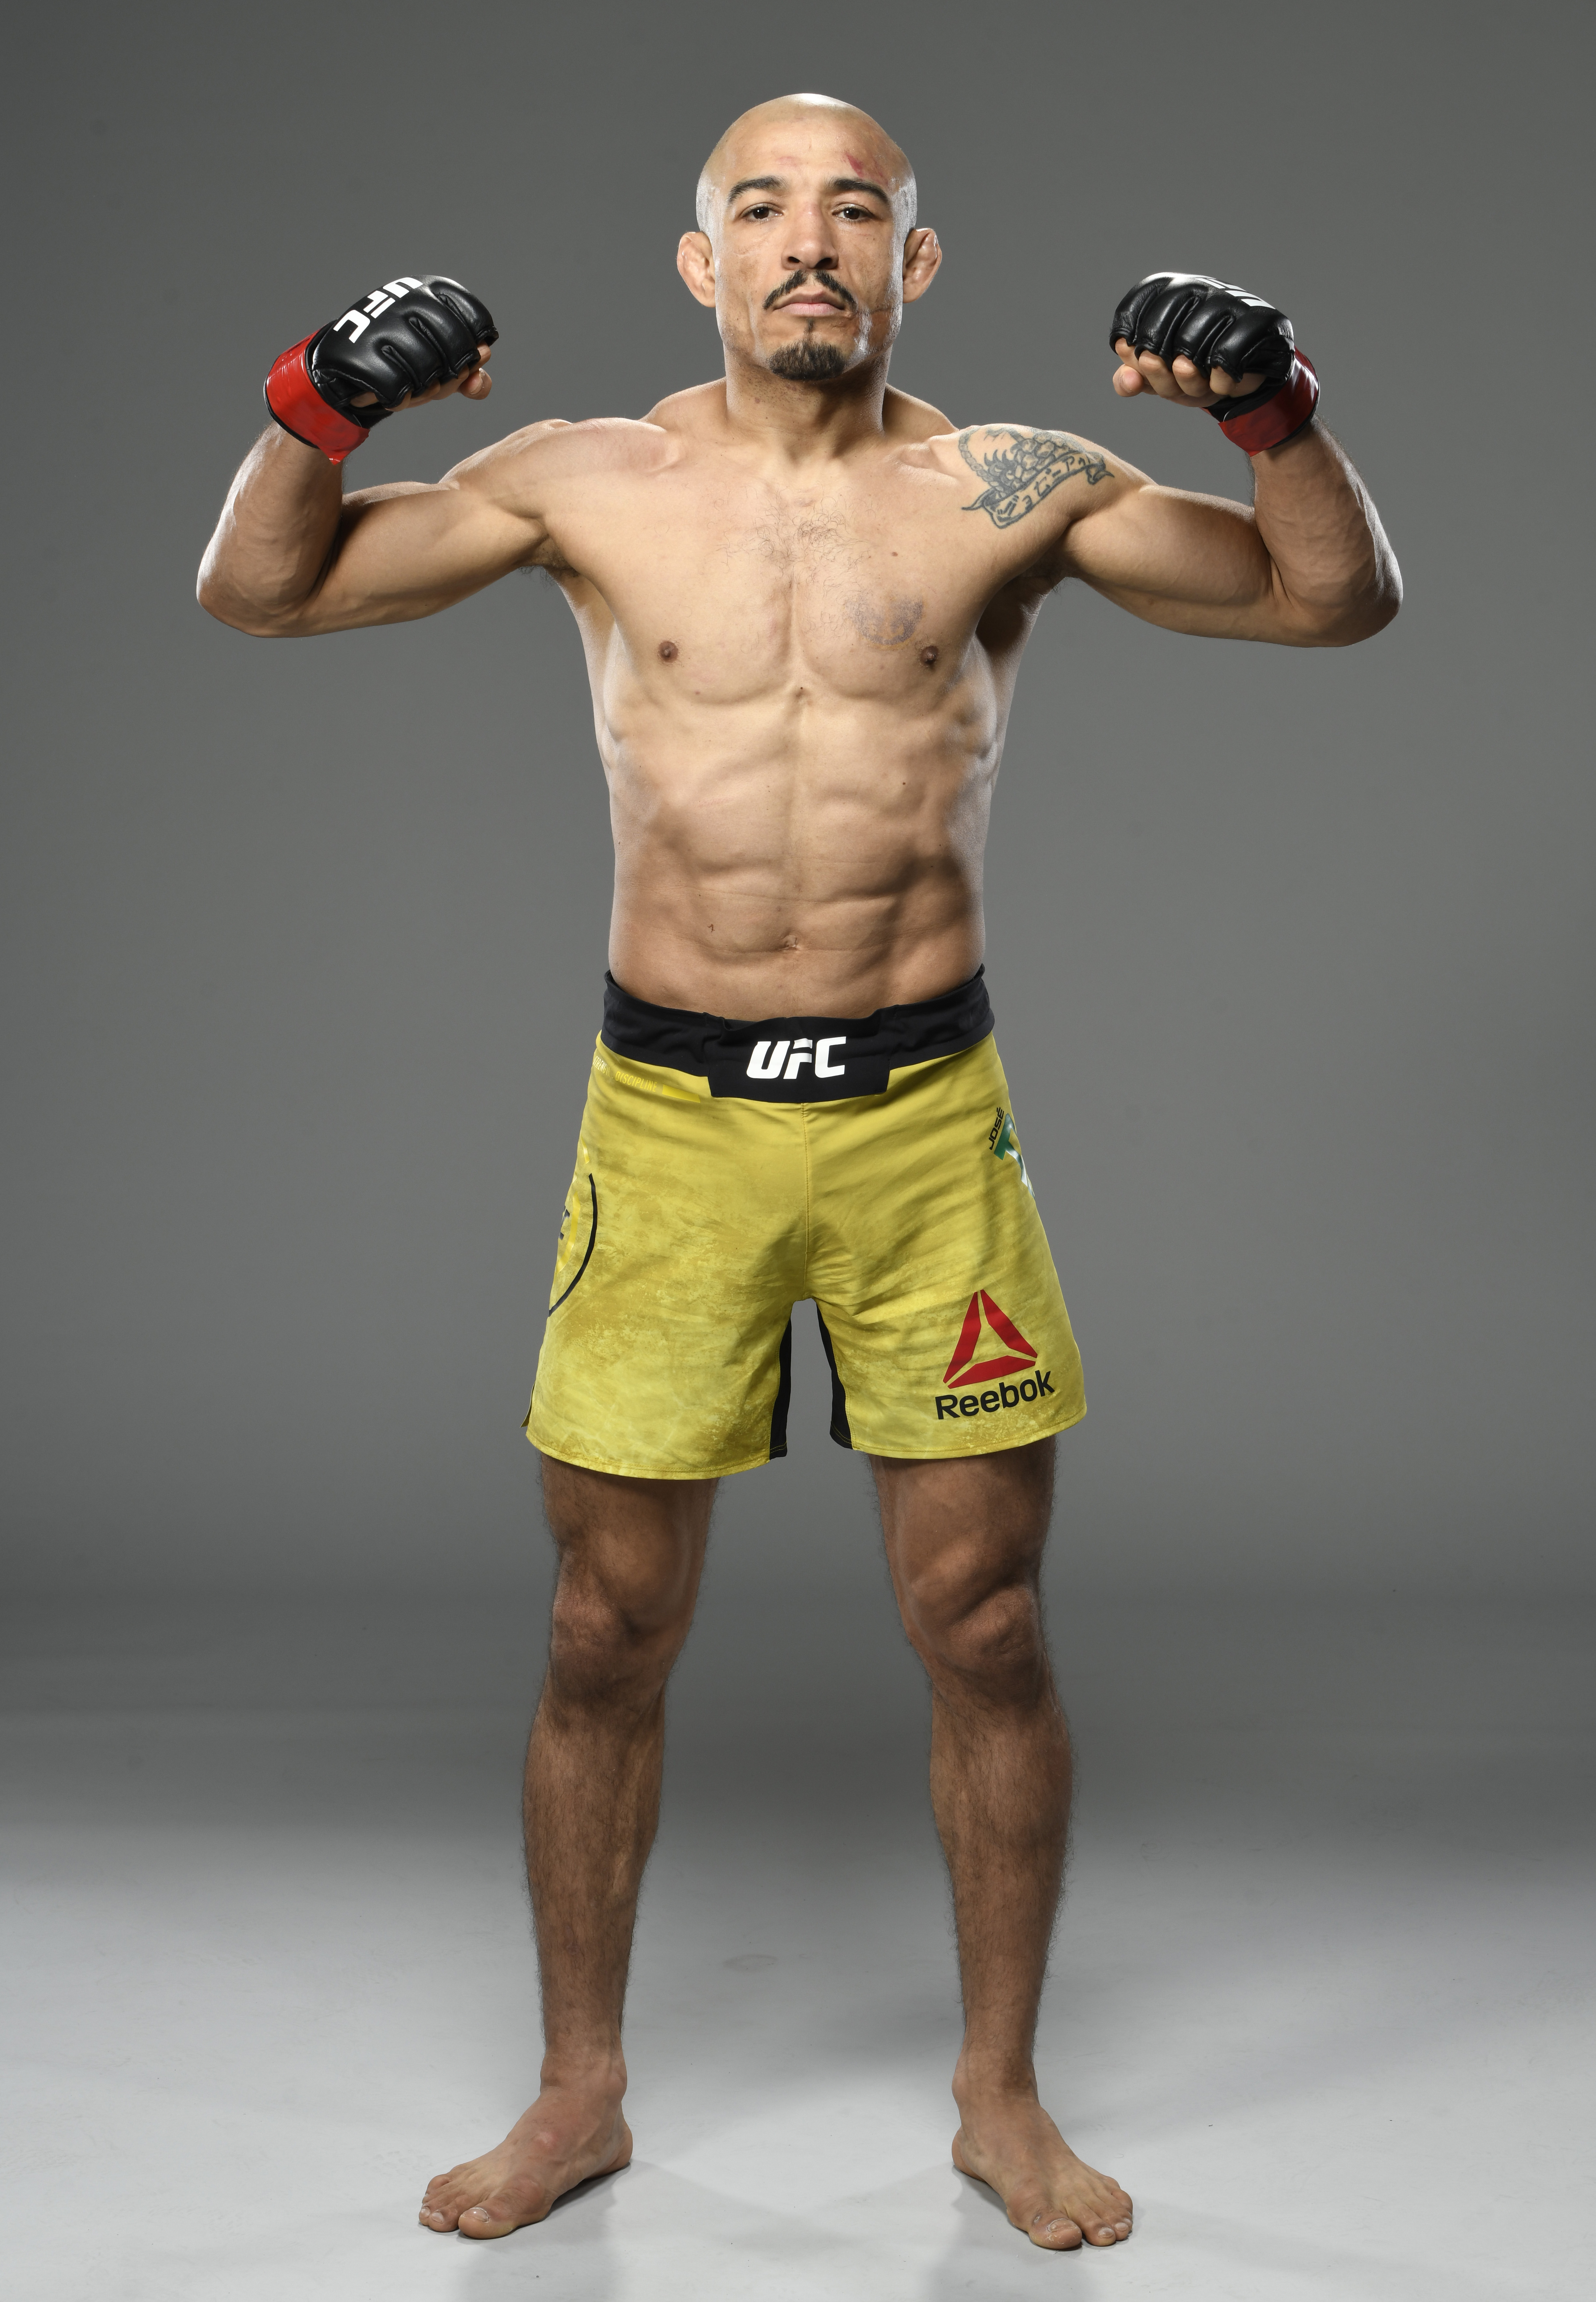 Jose Aldo of Brazil poses for a portrait after his victory during the UFC Fight Night event at UFC APEX on December 19, 2020 in Las Vegas, Nevada.